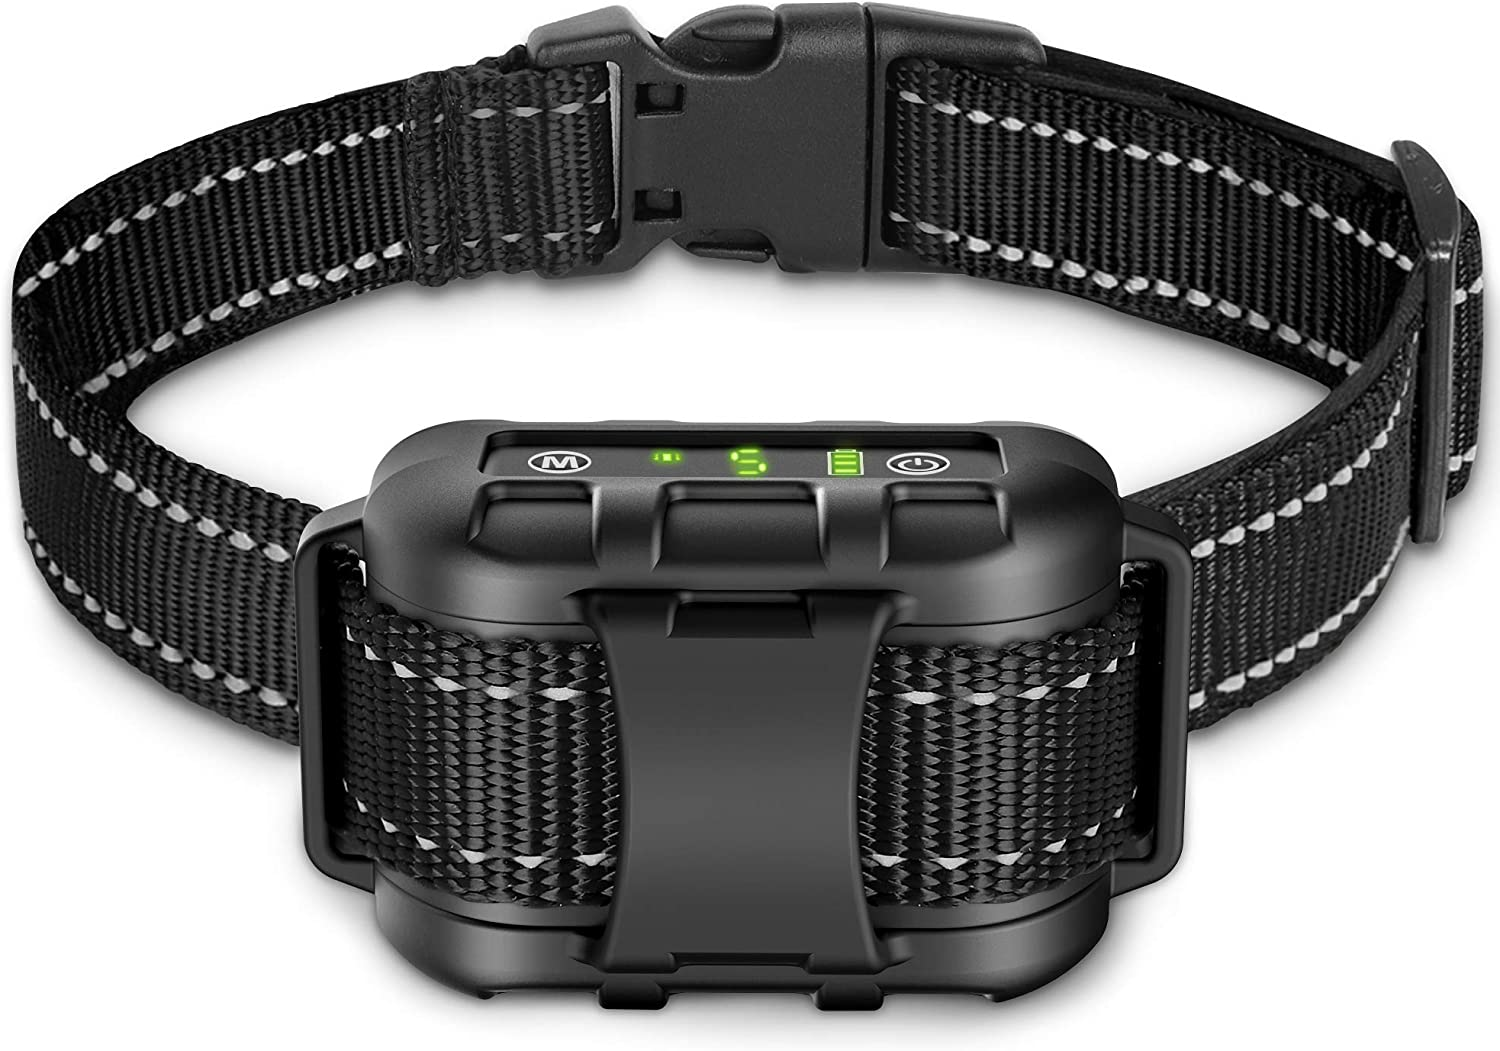 Dog Bark Collar - Rechargeable Shock Collar for Dogs in Small Medium and Large Sizes, No Barking Collar with 5 Adjustable Sensitivity, Beep, Vibration, Shock Modes, Safe Humane Auto Bark Correction : Kitchen & Dining